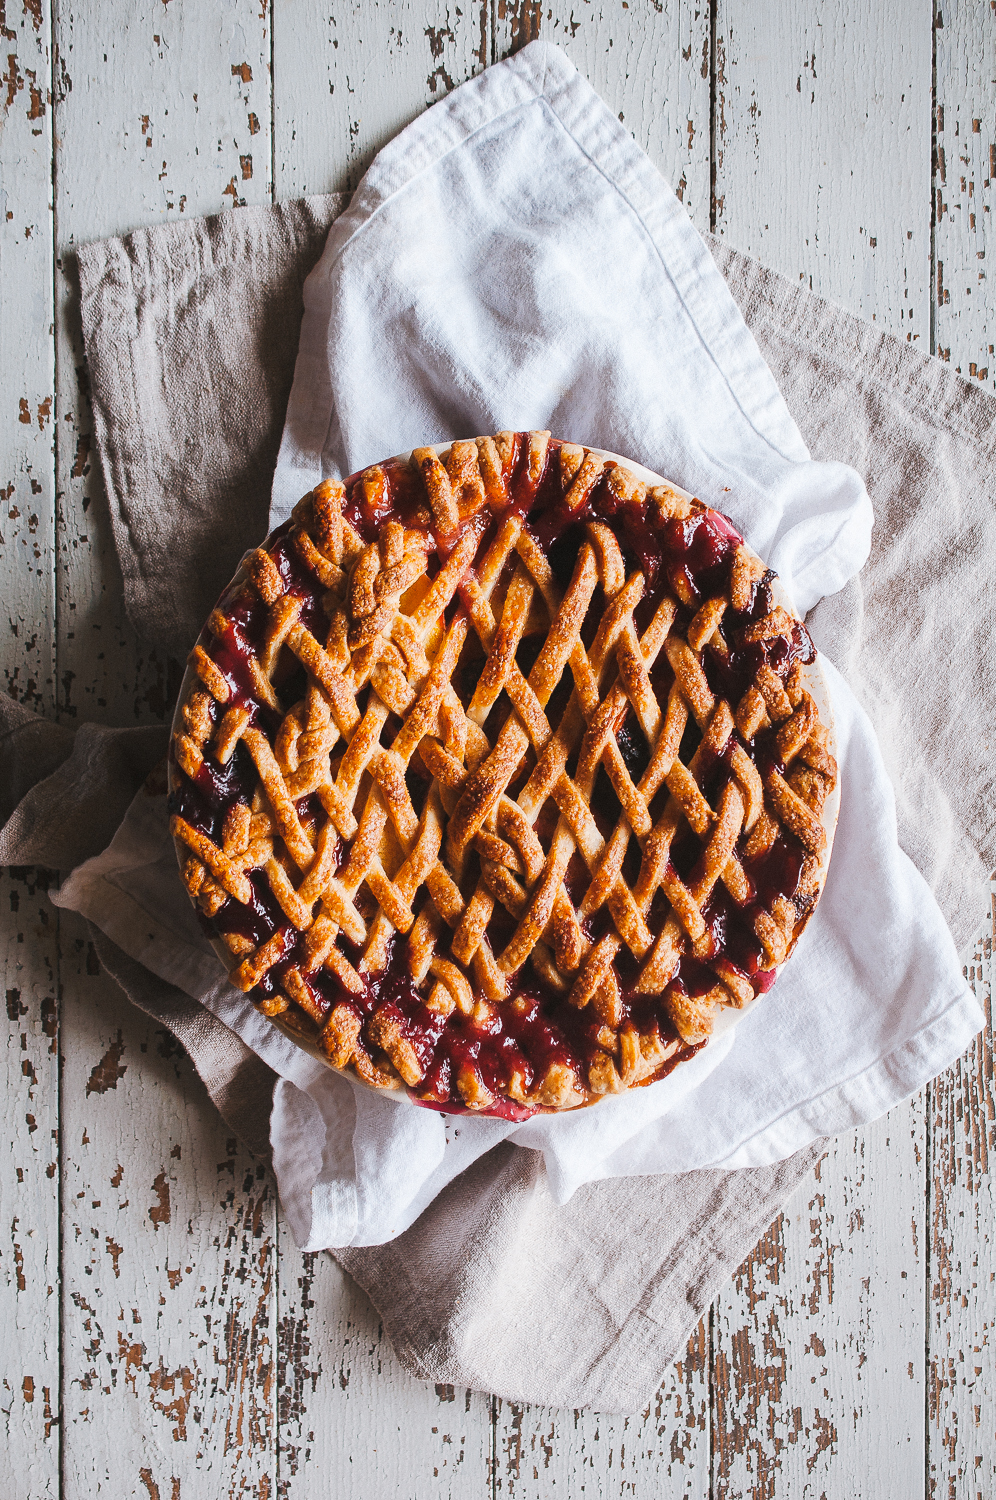 Peach blackberry pie 7.jpg